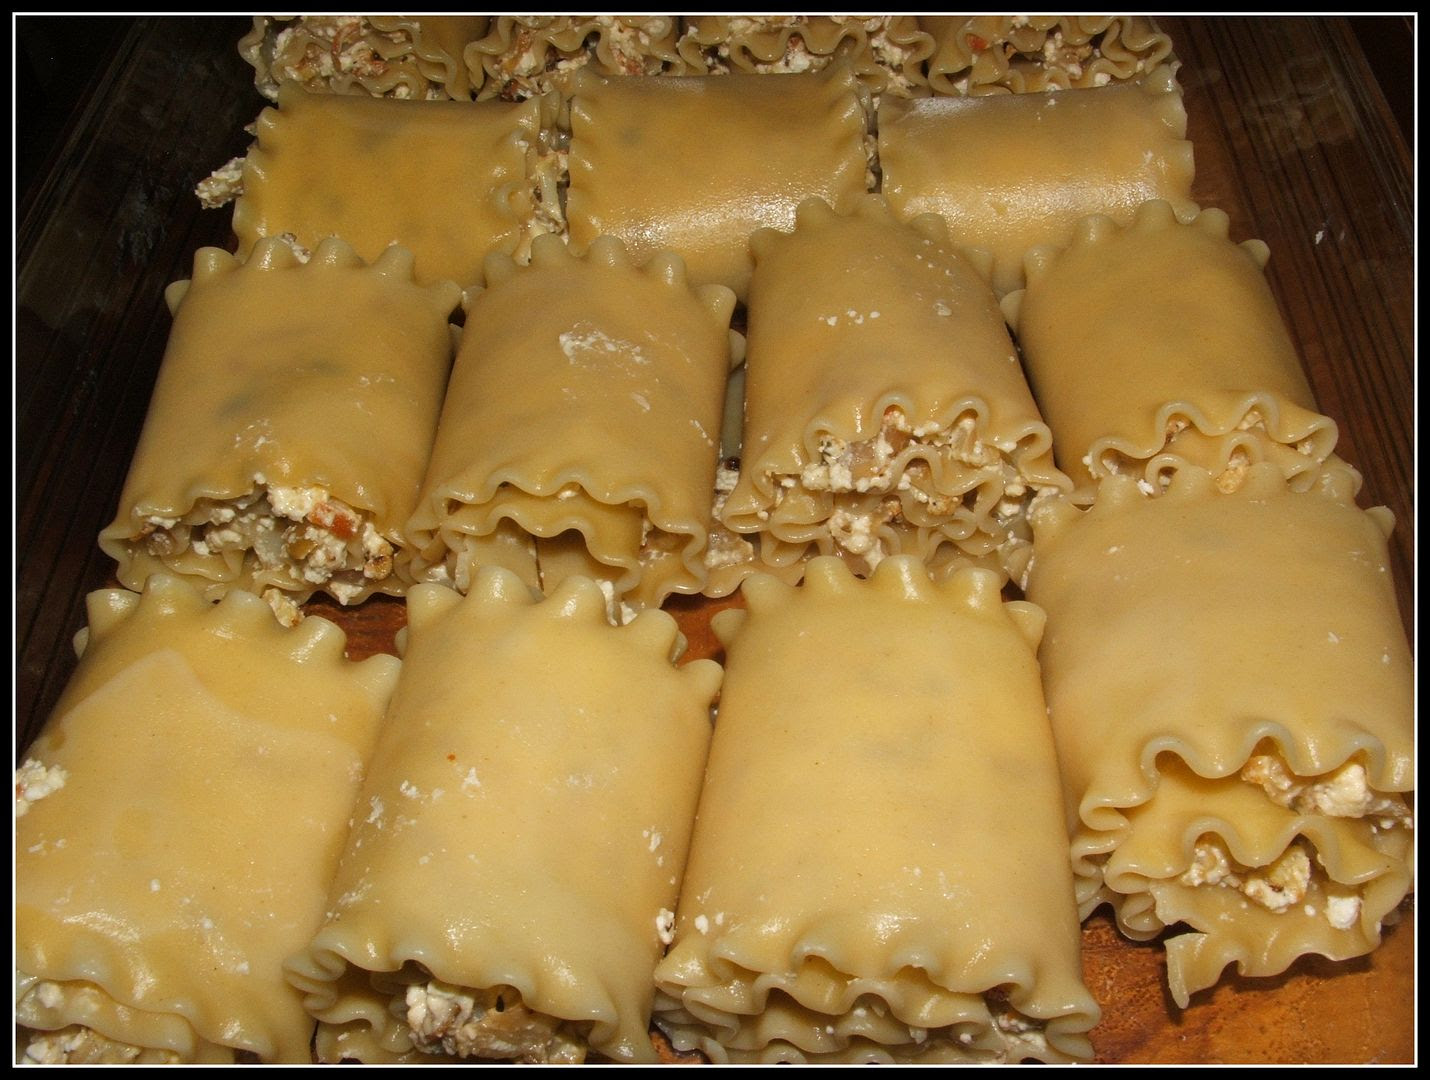 Cauliflower Lasagna Rollups by Angie Ouellette-Tower for godsgrowinggarden.com photo 010_zpse890e371.jpg